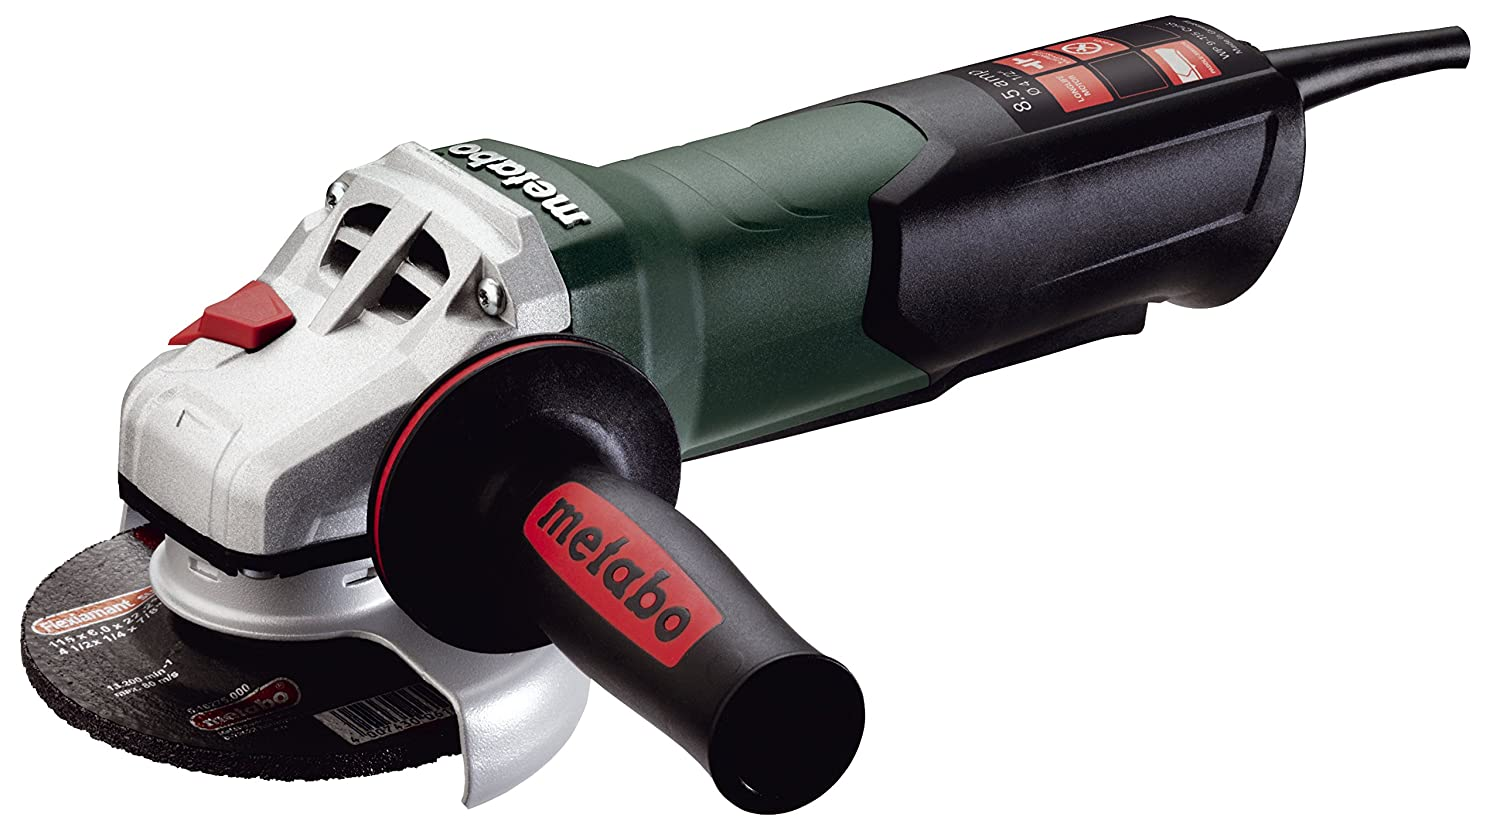 Metabo WP9-115 Quick 8.5 Amp 10,500 rpm Angle Grinder with Non-locking Paddle Switch, 4 1 2